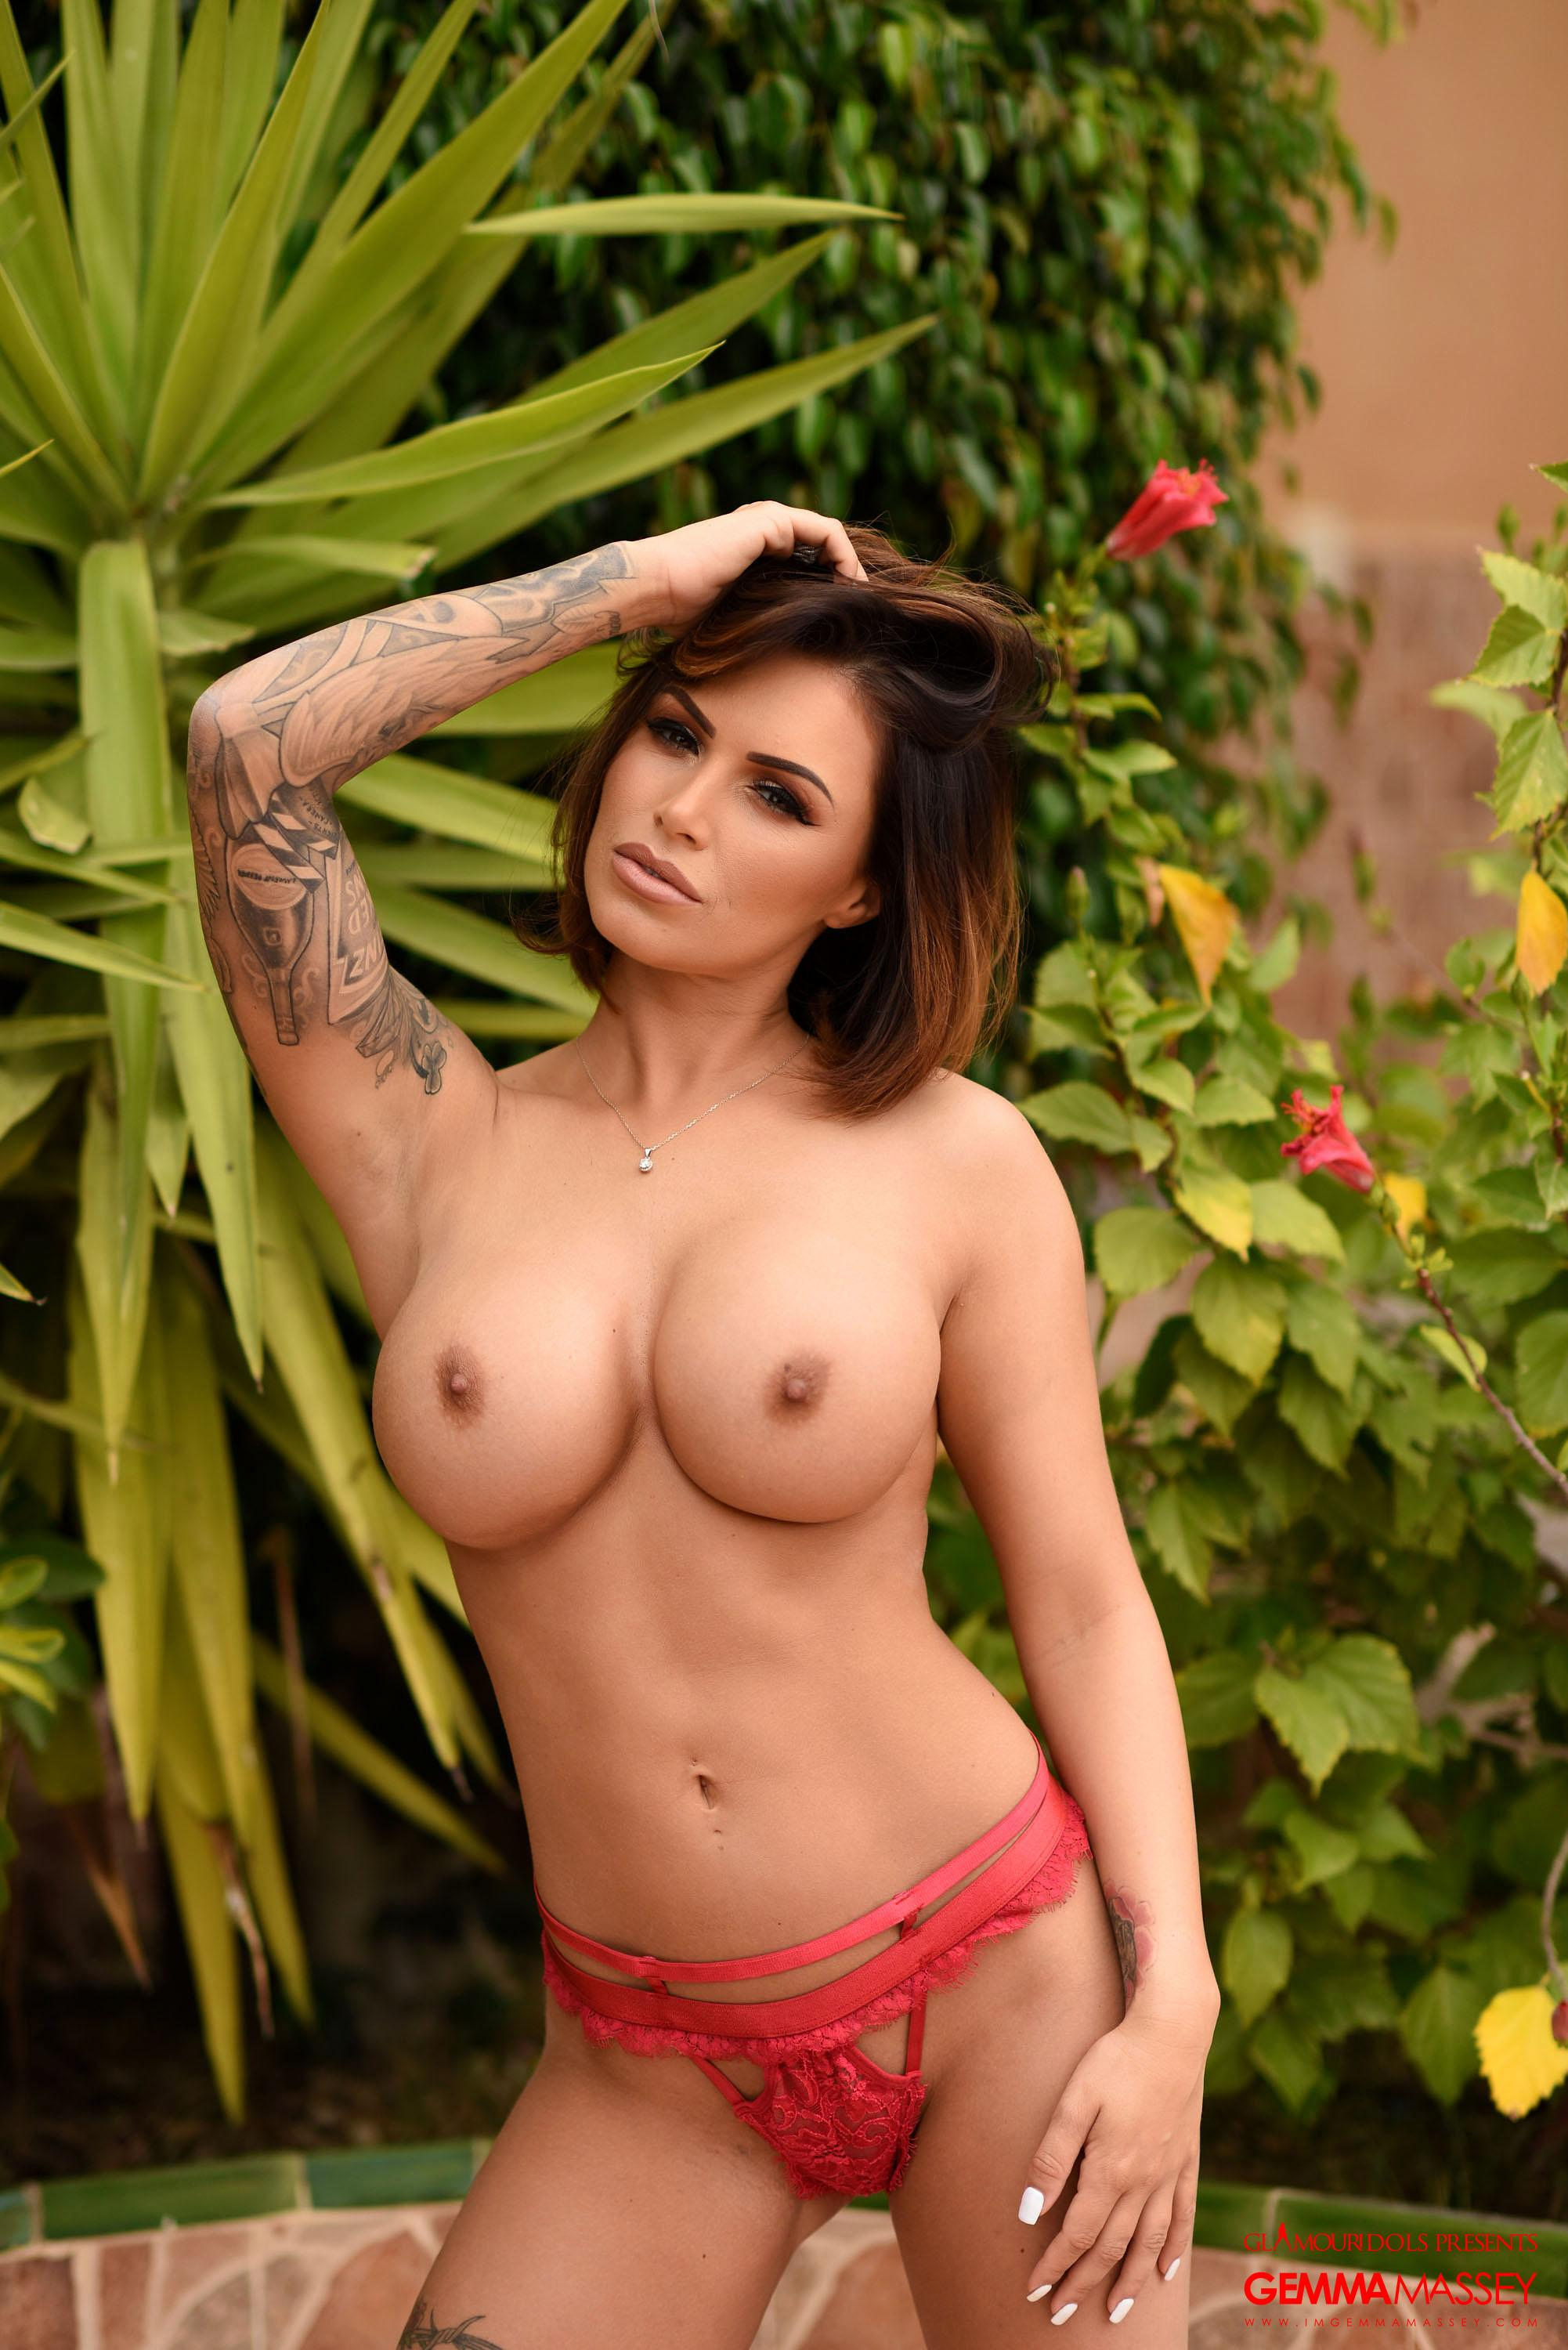 Adele taylor teases in the shower 3